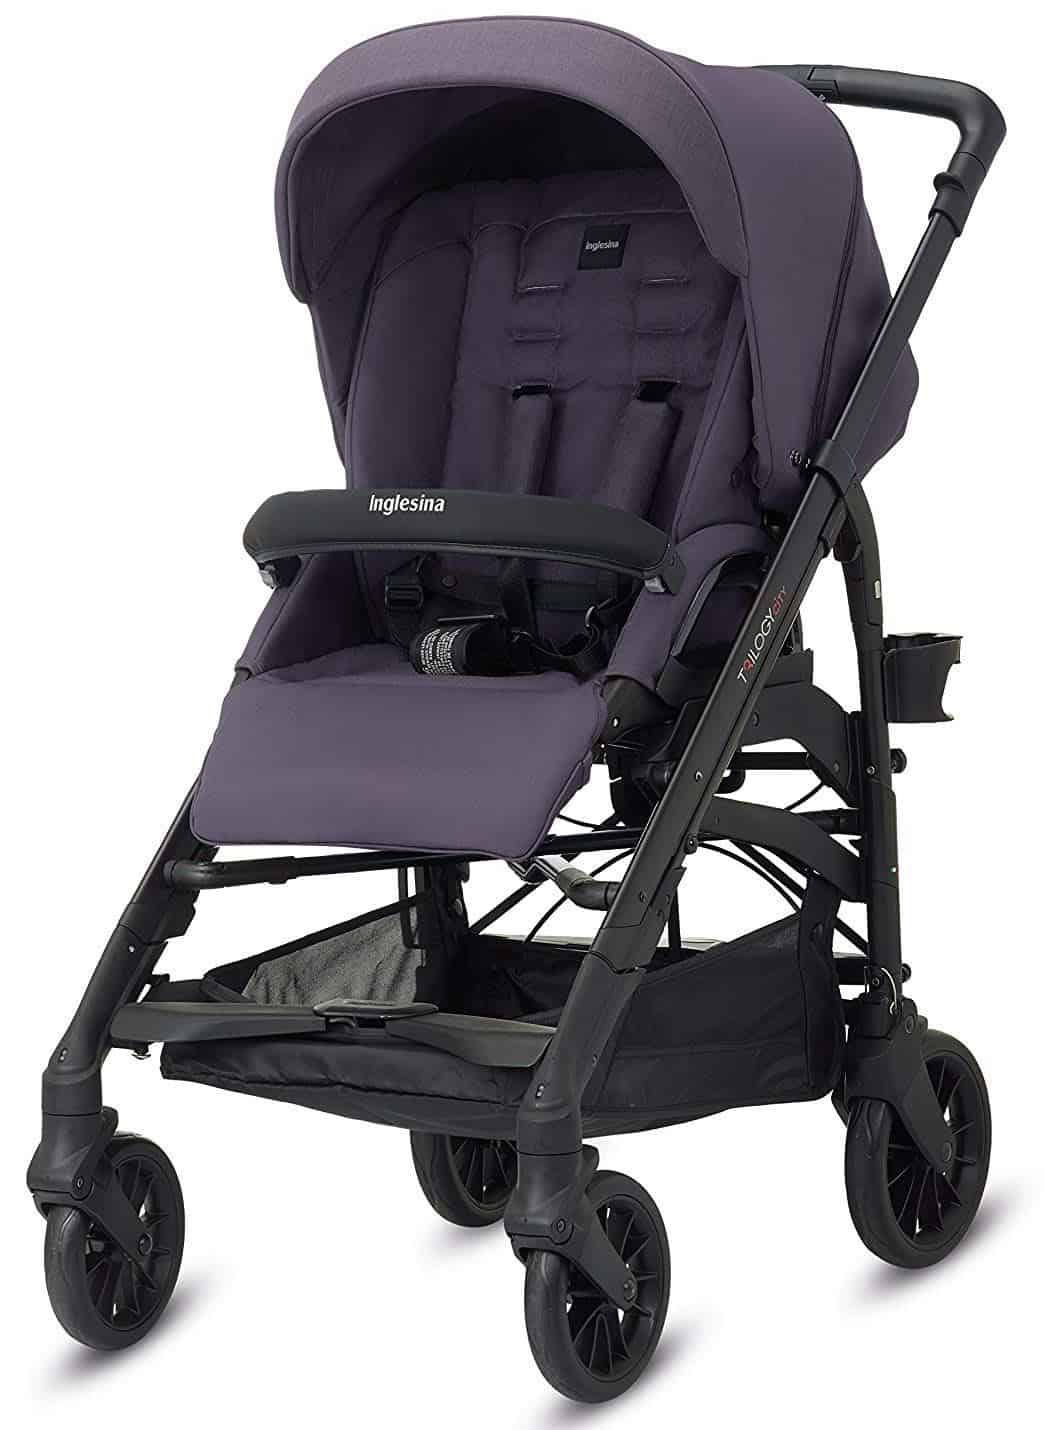 Inglesina – Trilogy Stroller with Bassinet